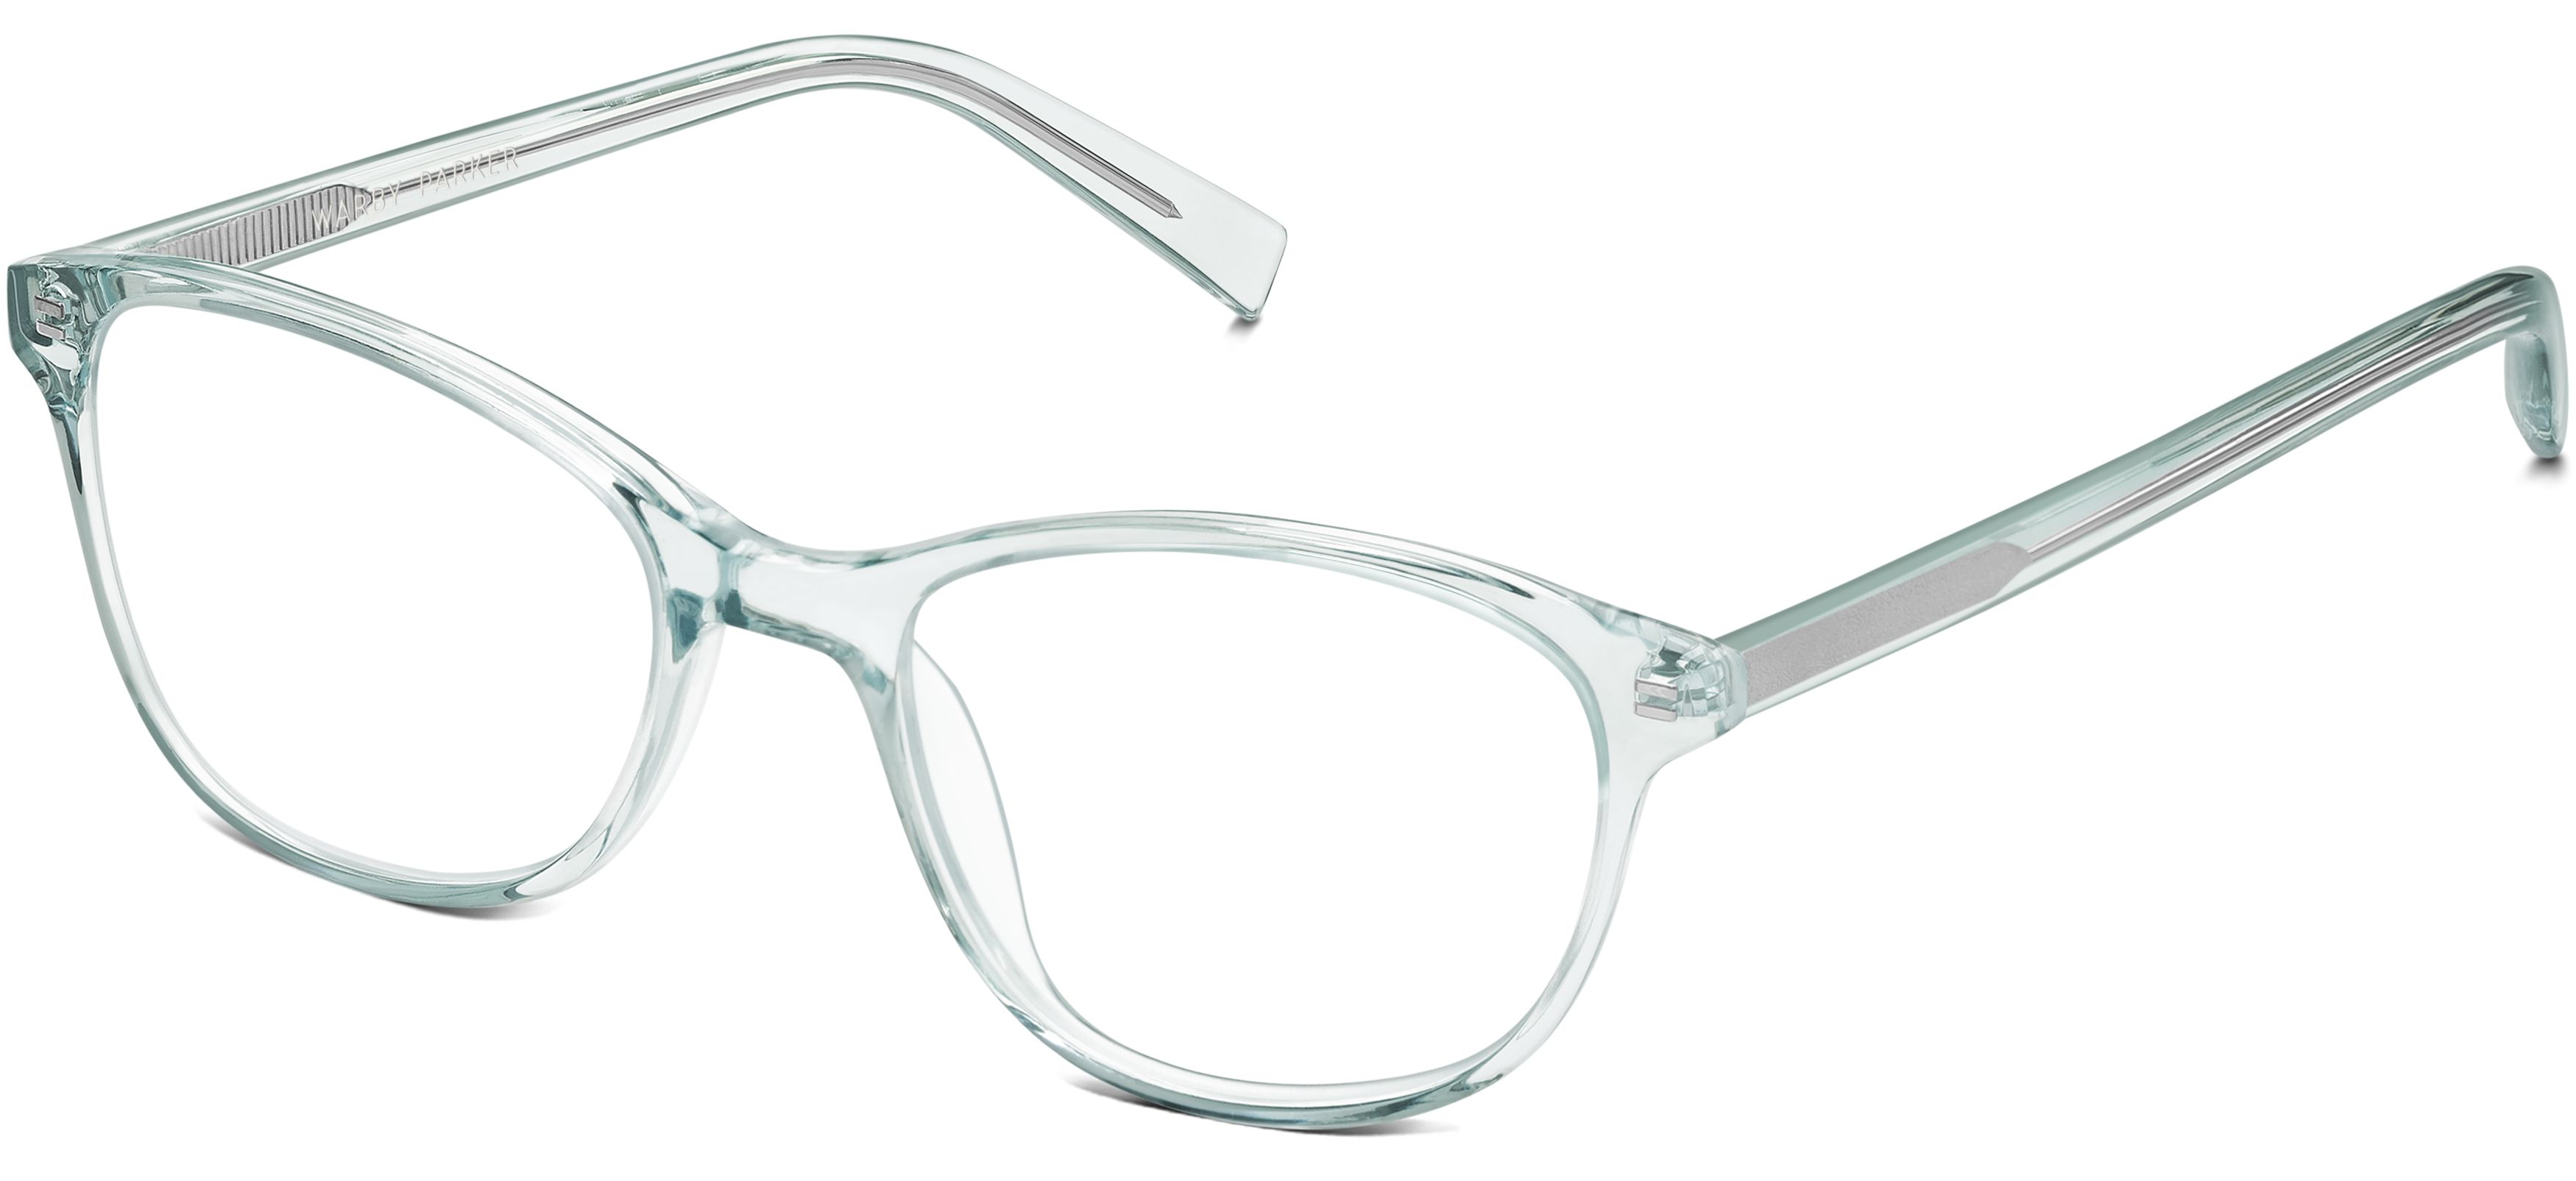 Daisy Eyeglasses in Cyprus Crystal for Women | Warby Parker